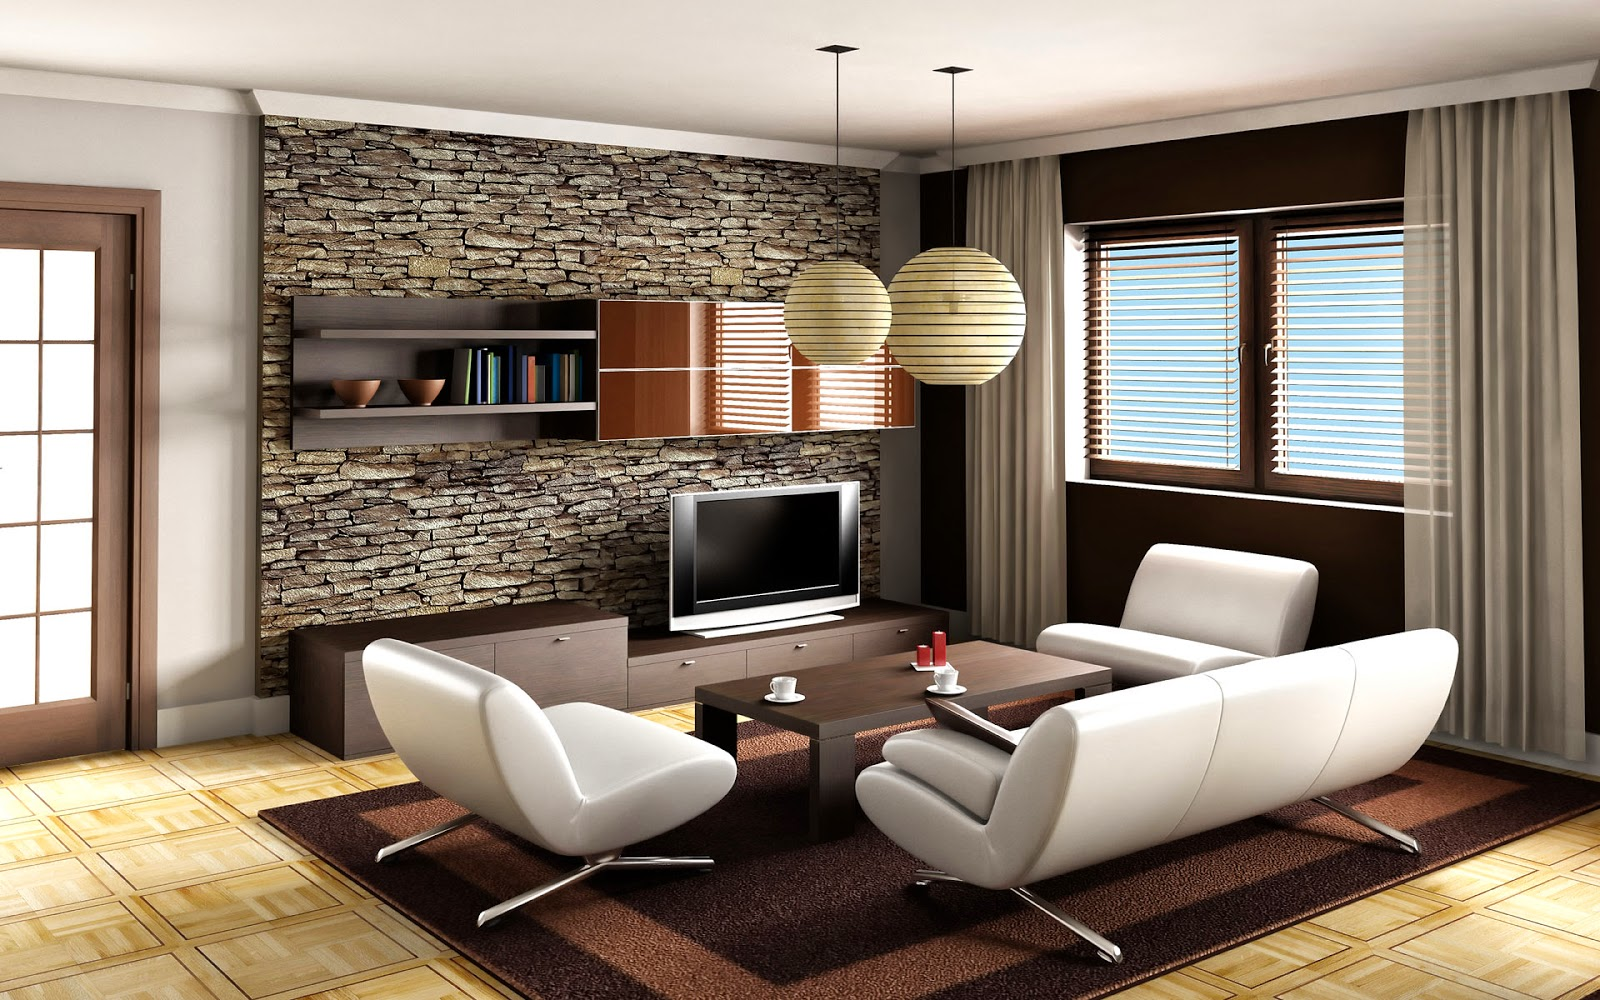 2 living room decor ideas brown leather sofa home design hd wallpapers - Tan living room ideas ...